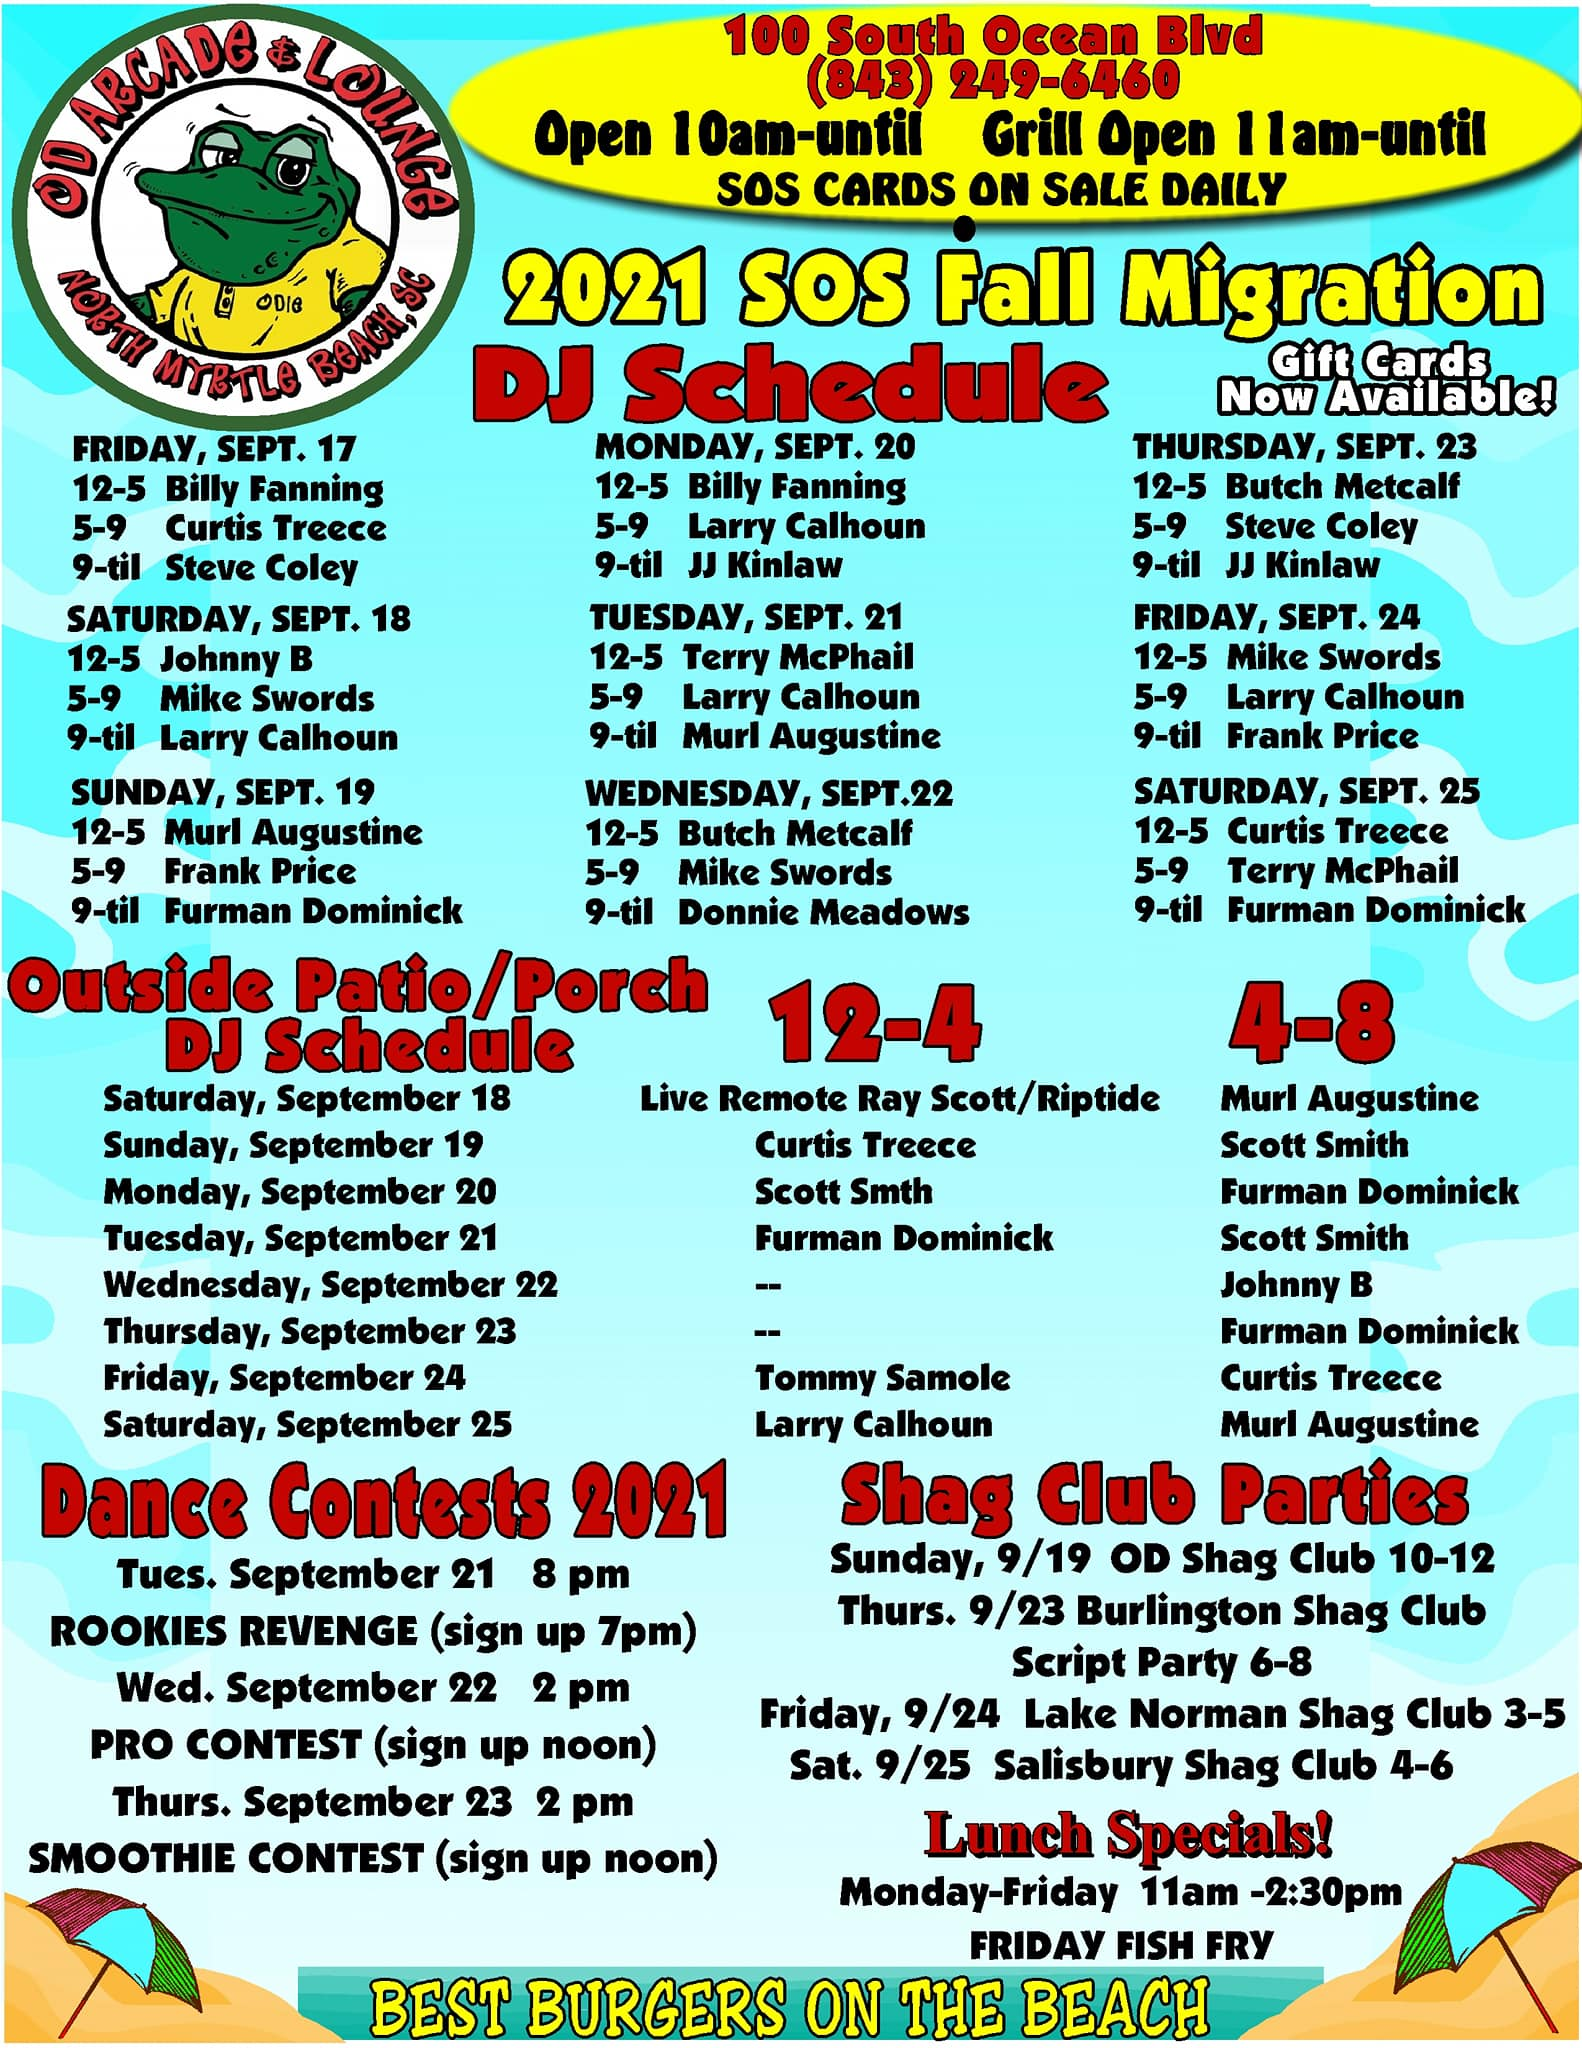 2021 SOS Fall Migration schedule